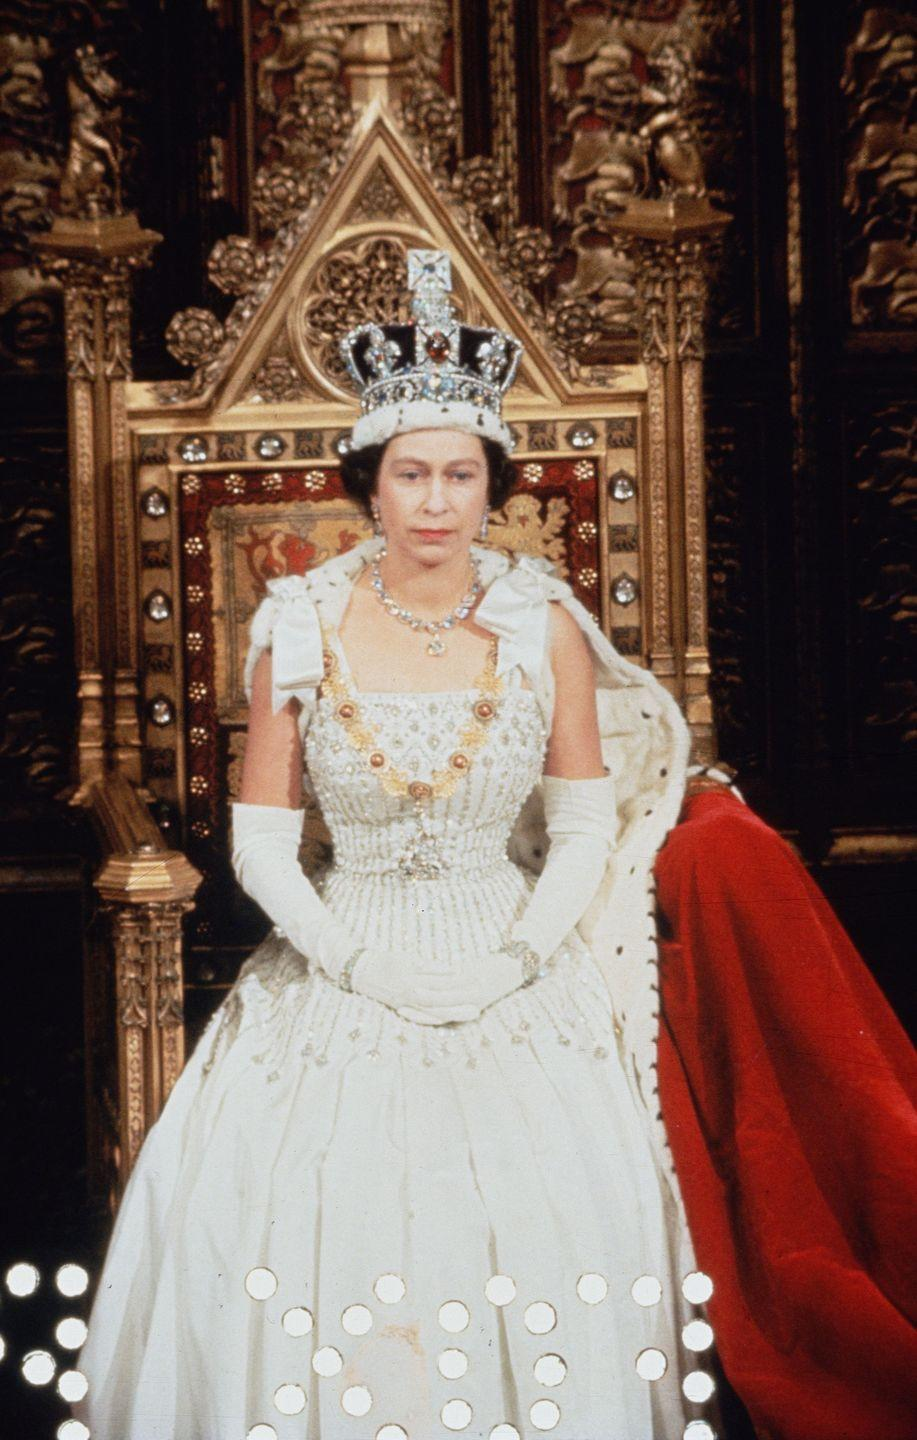 <p>On January 1, 1967, the Queen wore the Imperial State Crown along with the diamond necklace she had worn for her coronation. The crown was made for the coronation of King George VI in 1937 and is set with 2868 diamonds in silver mounts, largely table-, rose- and brilliant-cut, and colored stones in gold mounts, including 17 sapphires, 11 emeralds and 269 pearls. </p>